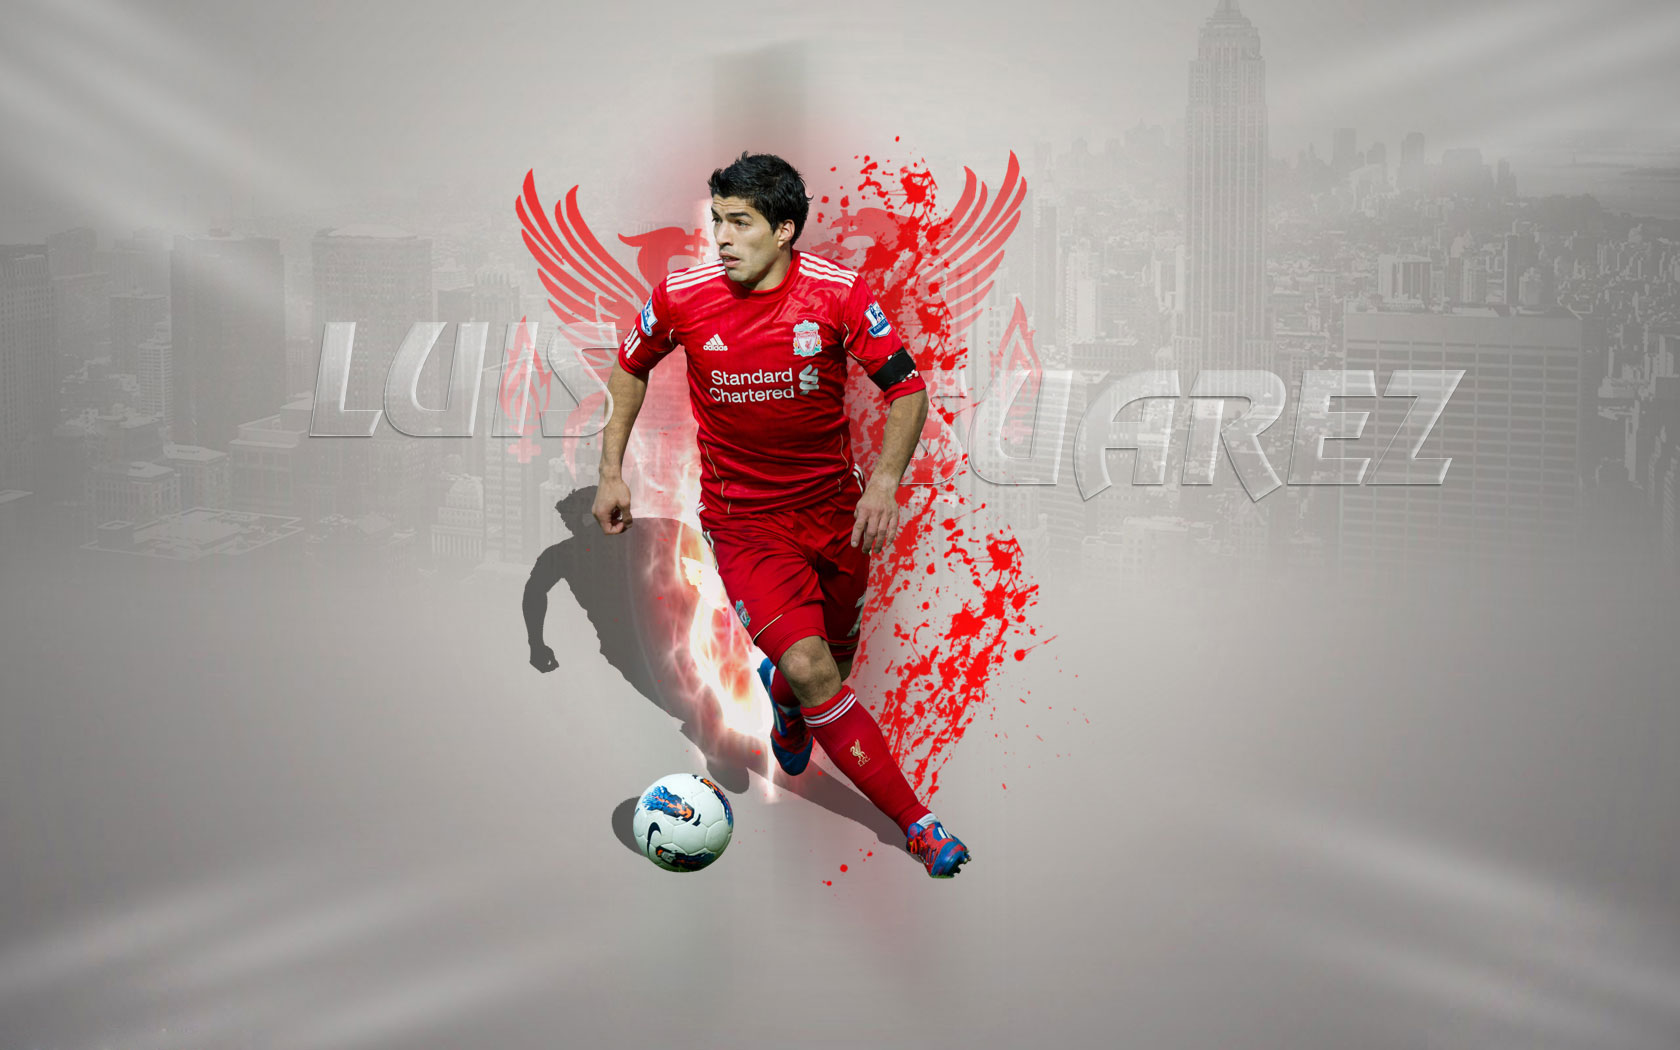 Luis Suarez Wallpapers High Resolution and Quality Download 1680x1050